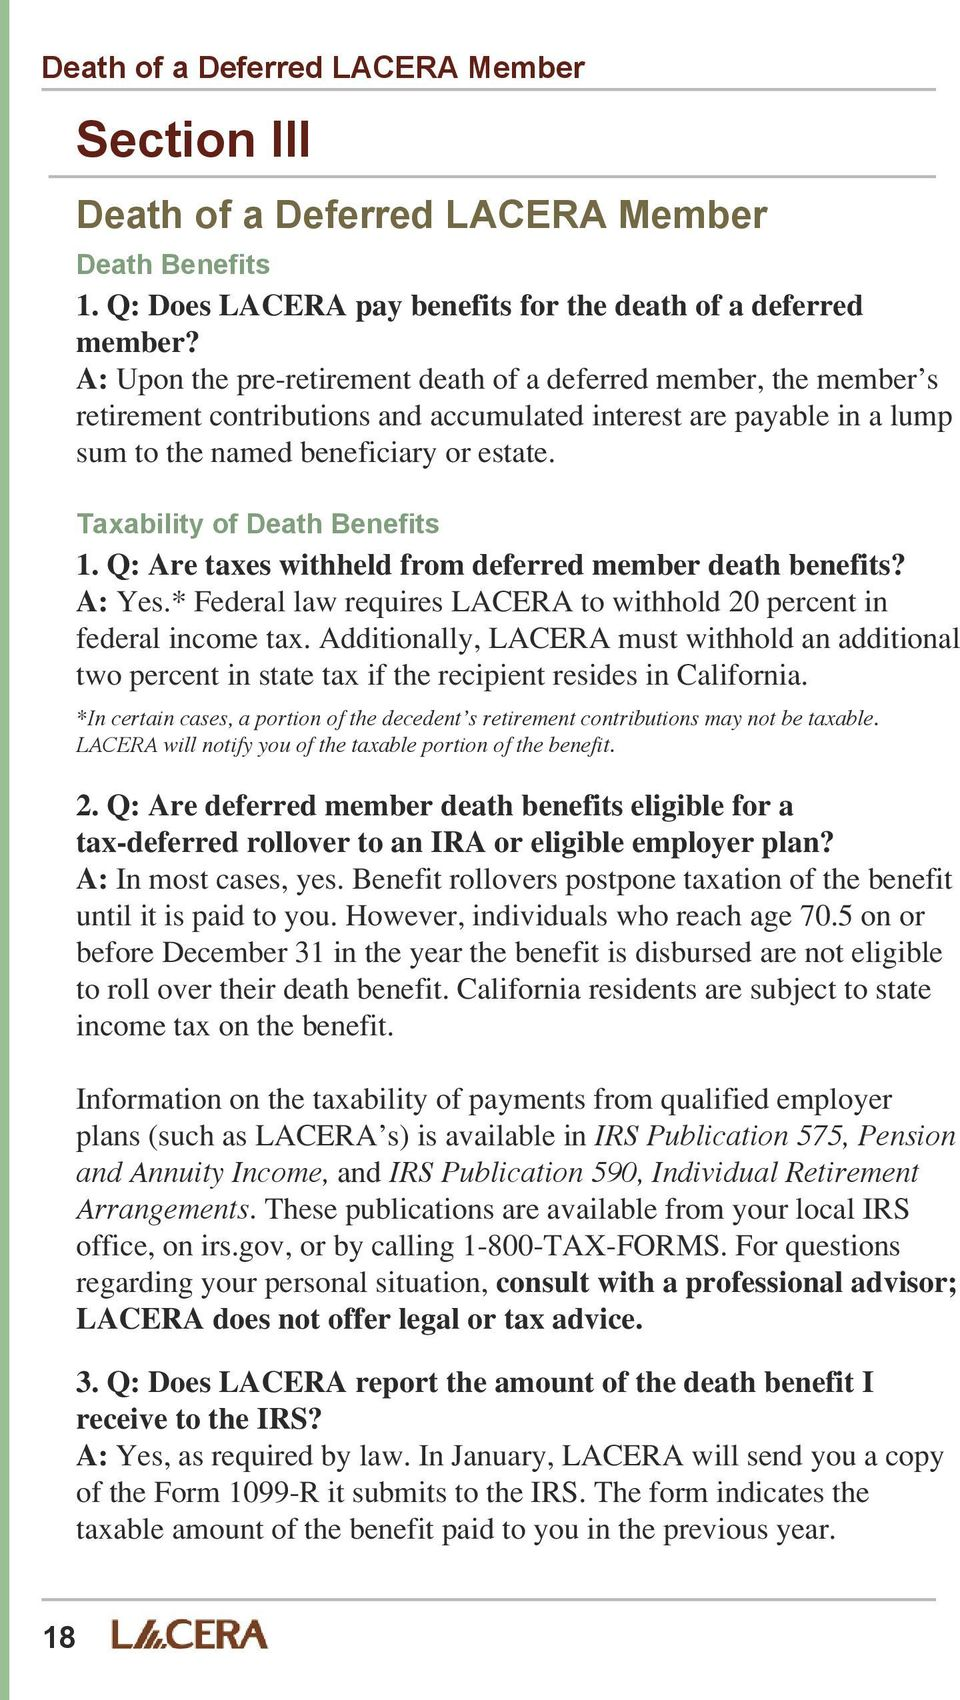 Taxability of Death Benefits 1. Q: Are taxes withheld from deferred member death benefits? A: Yes.* Federal law requires LACERA to withhold 20 percent in federal income tax.